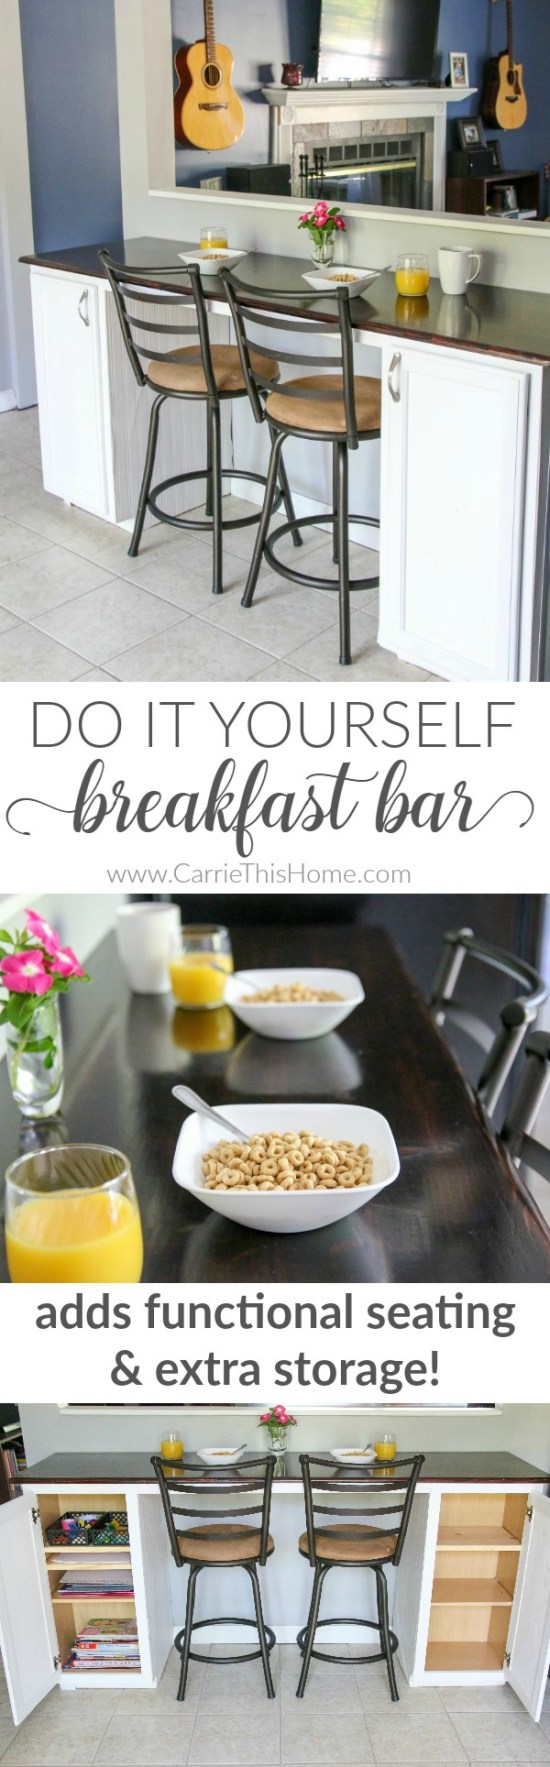 Diy Breakfast Bar An Easy Weekend Project You Can Do